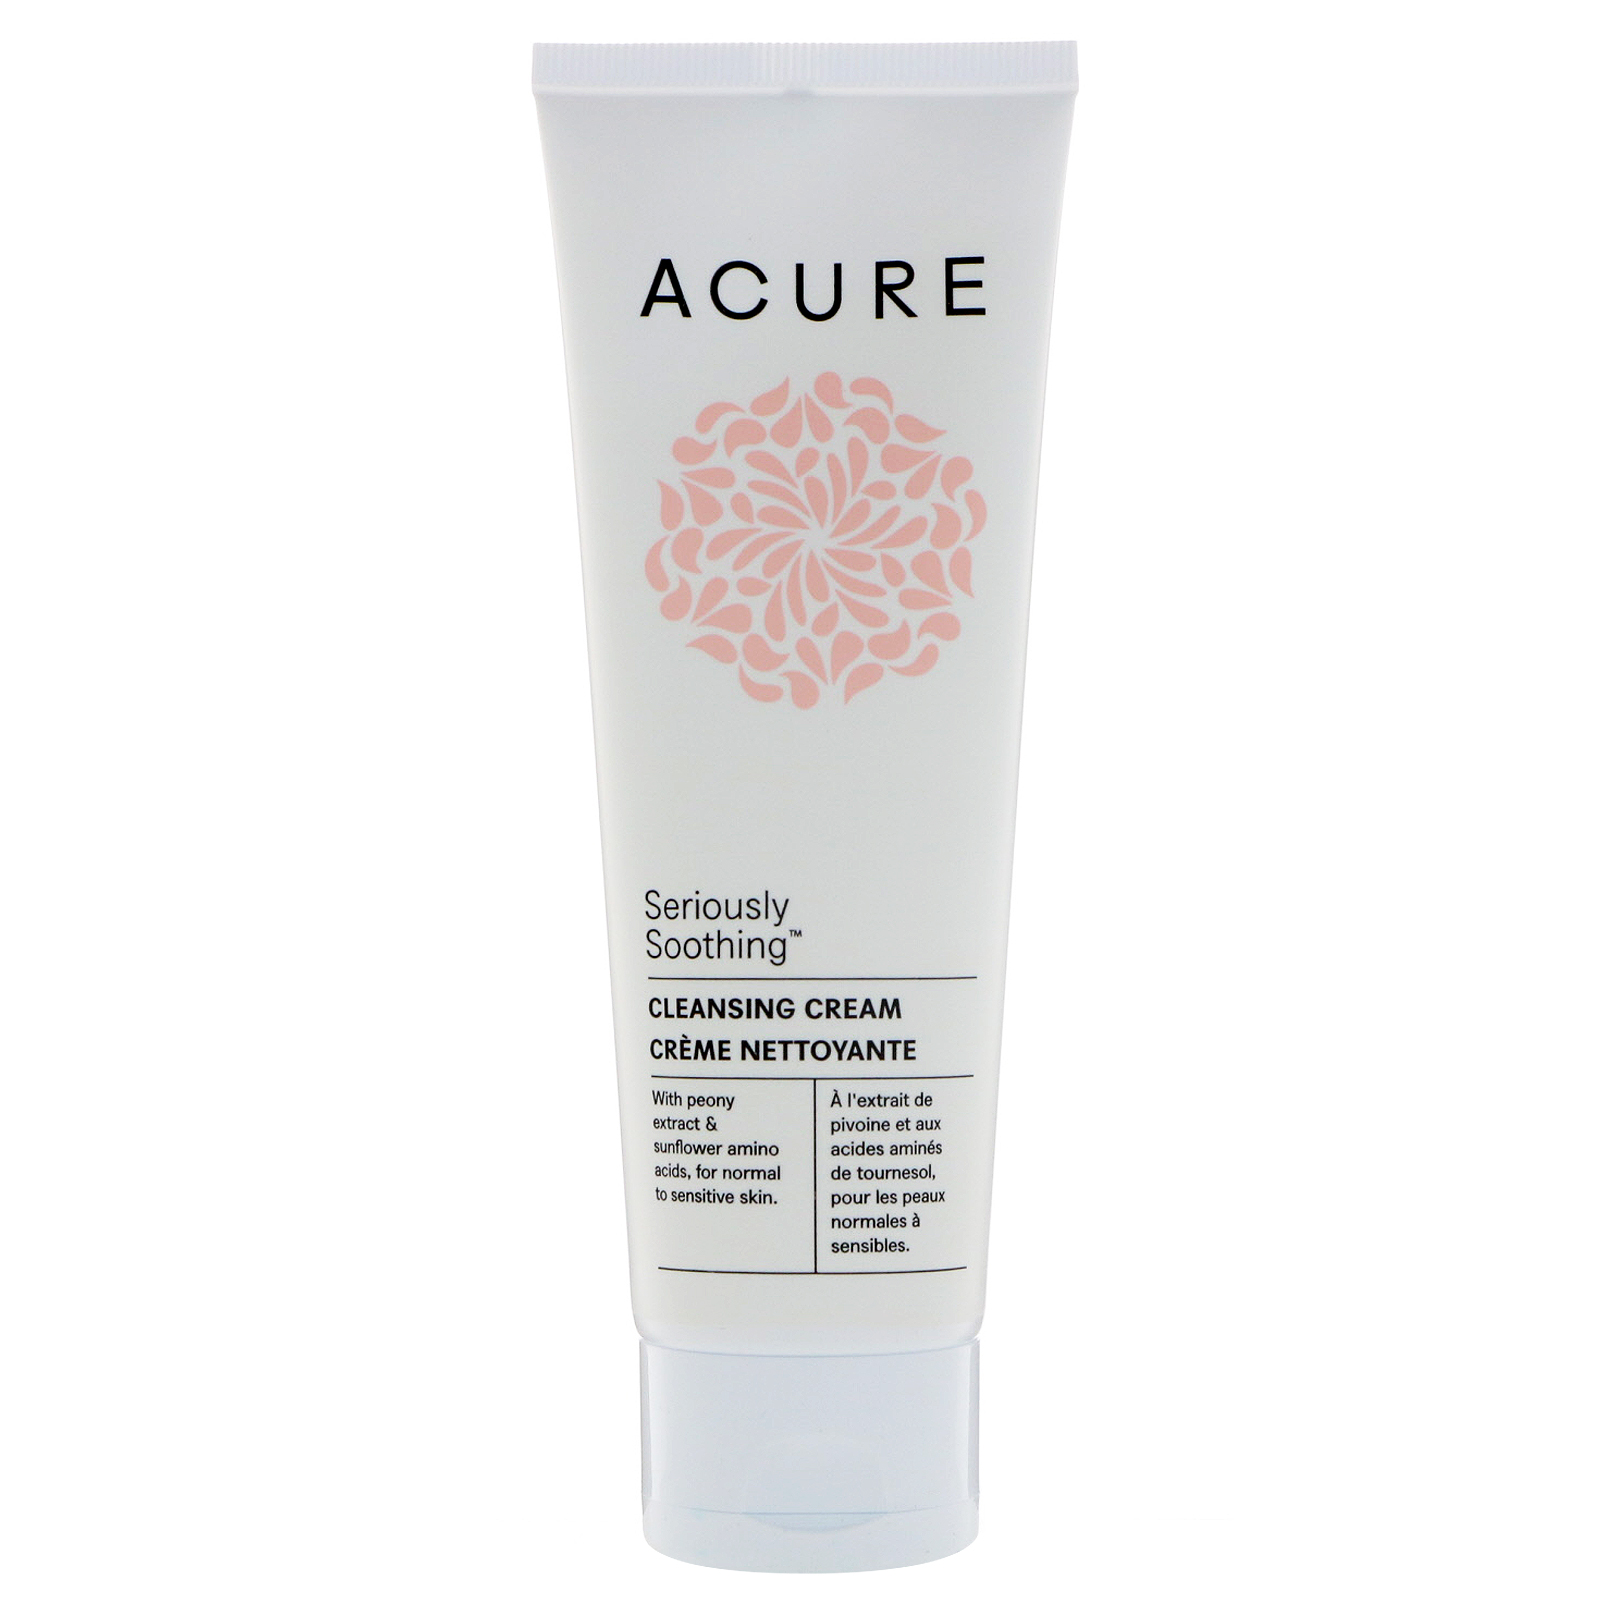 Acure, Seriously Soothing, Cleansing Cream, 4 Fl Oz (118